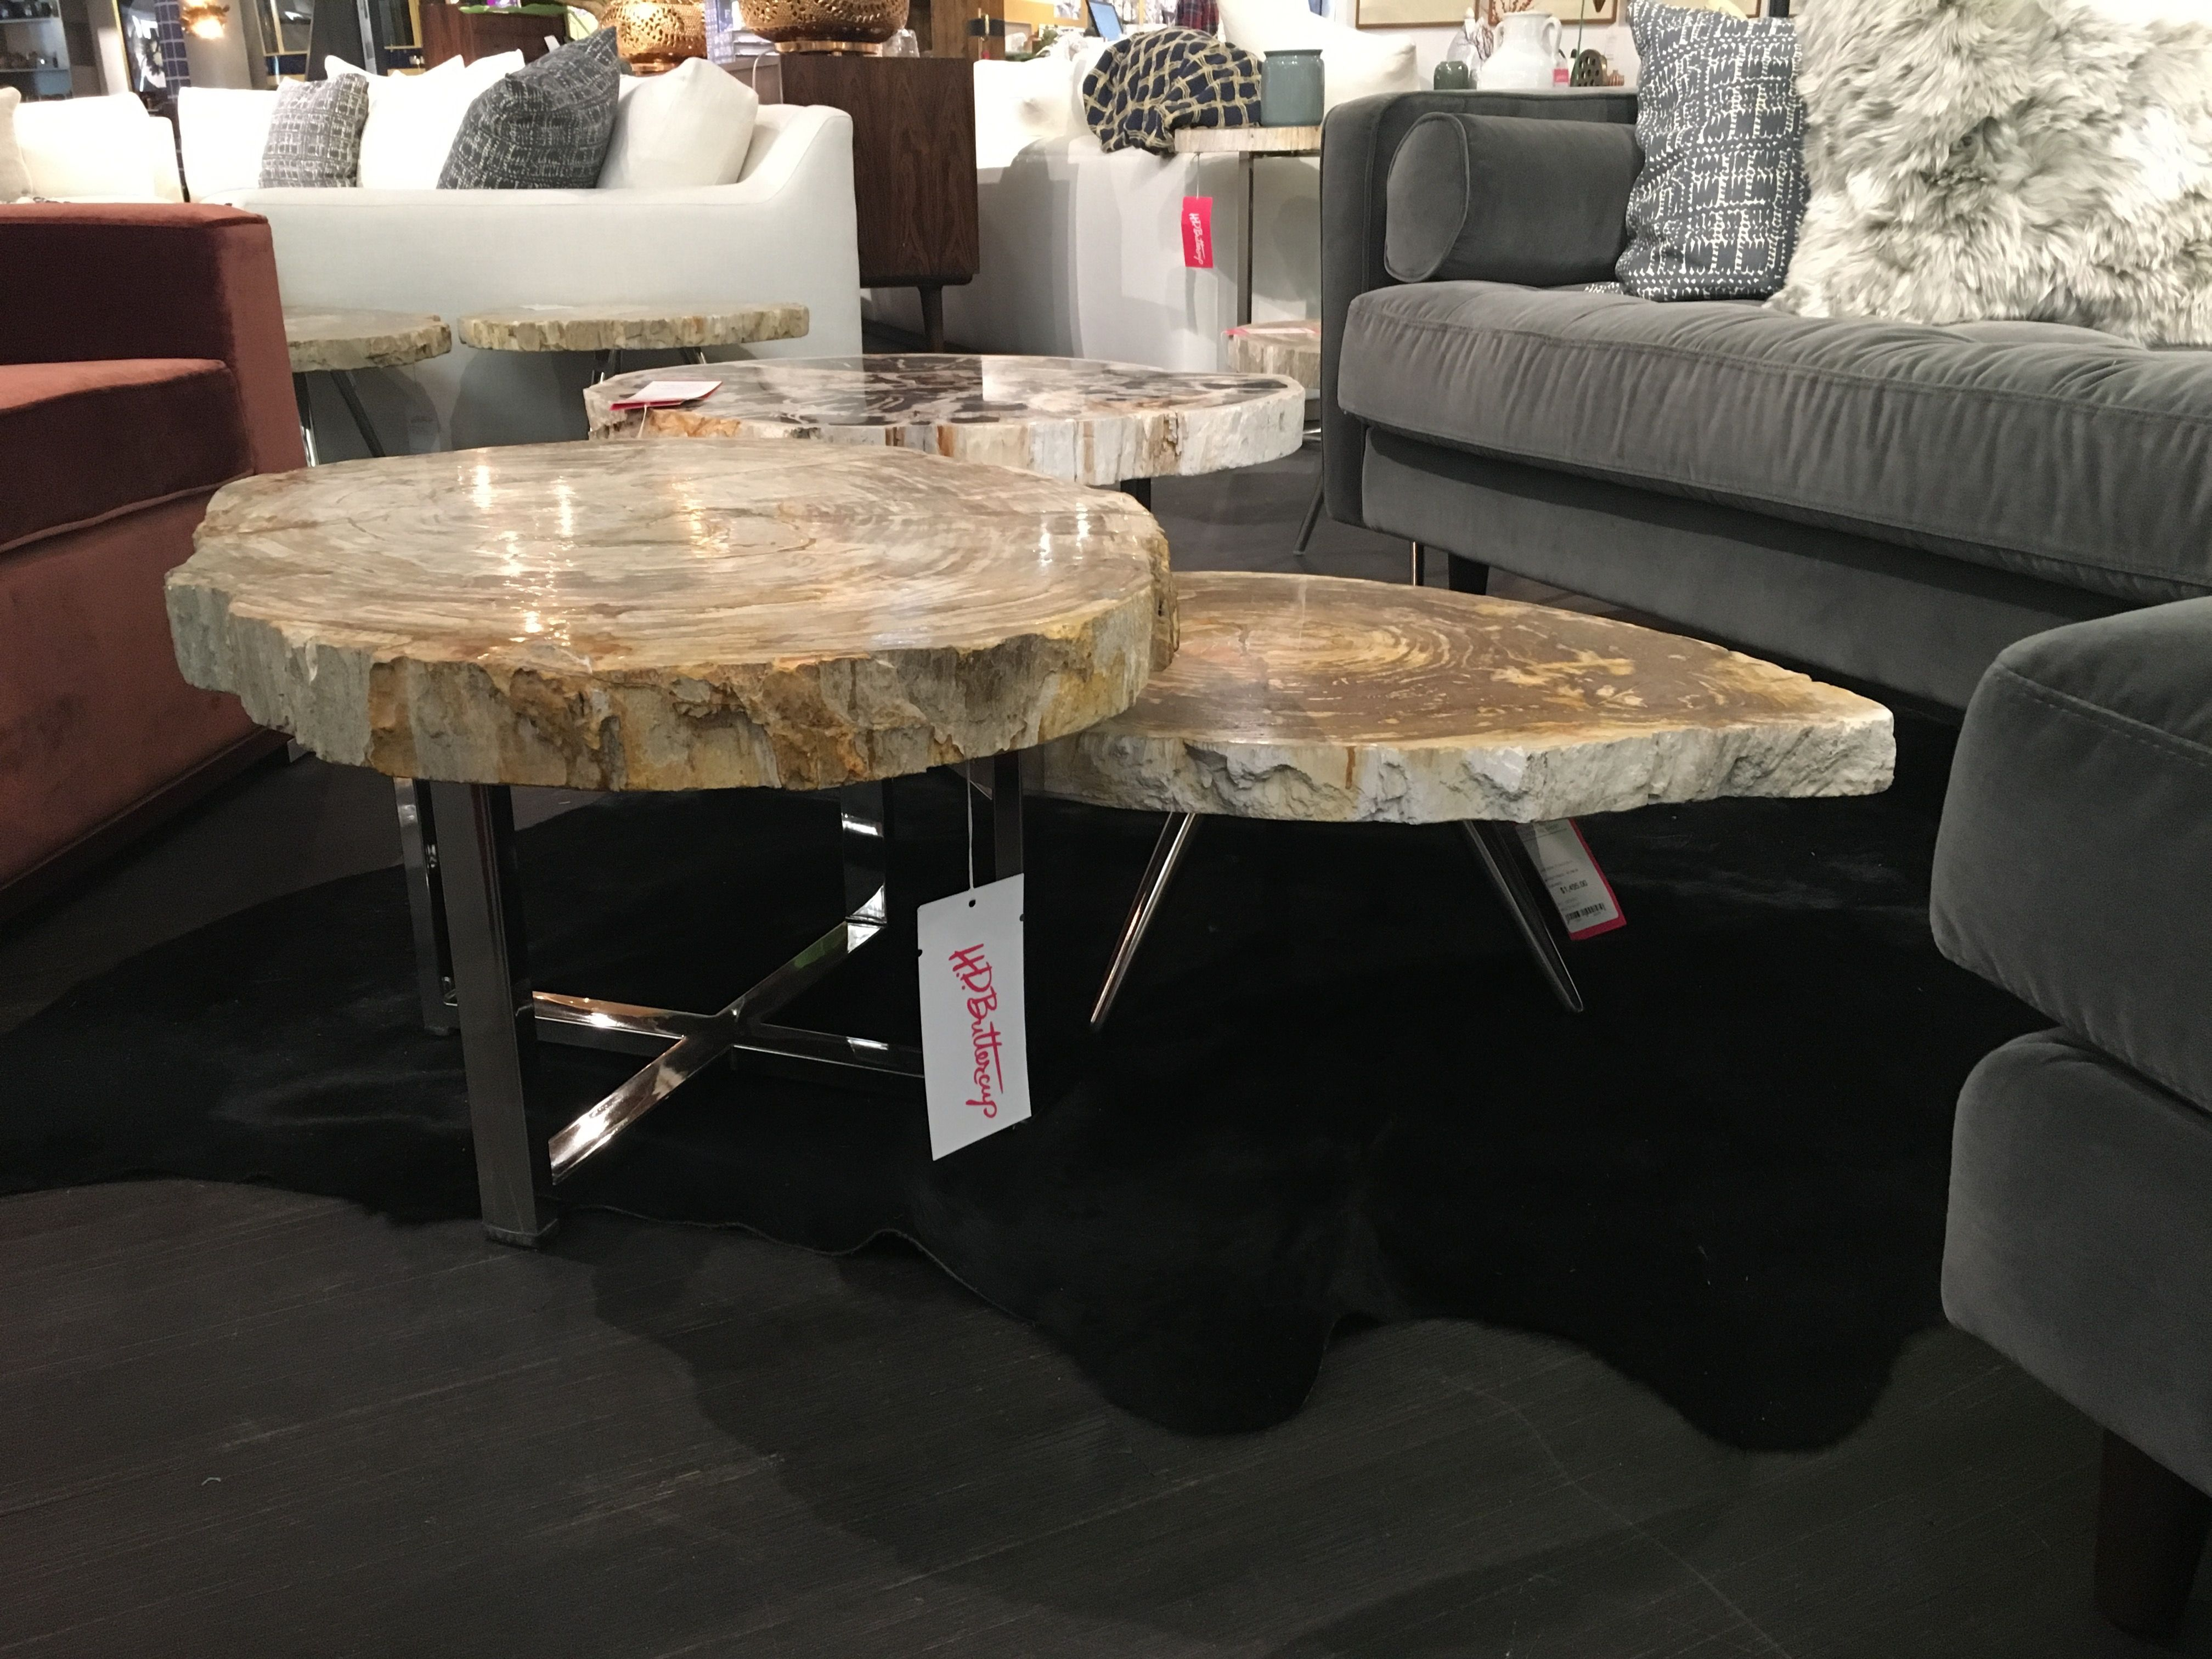 Stone Top Coffee Tables H D Buttercup 11 16 inches tall to 16 39